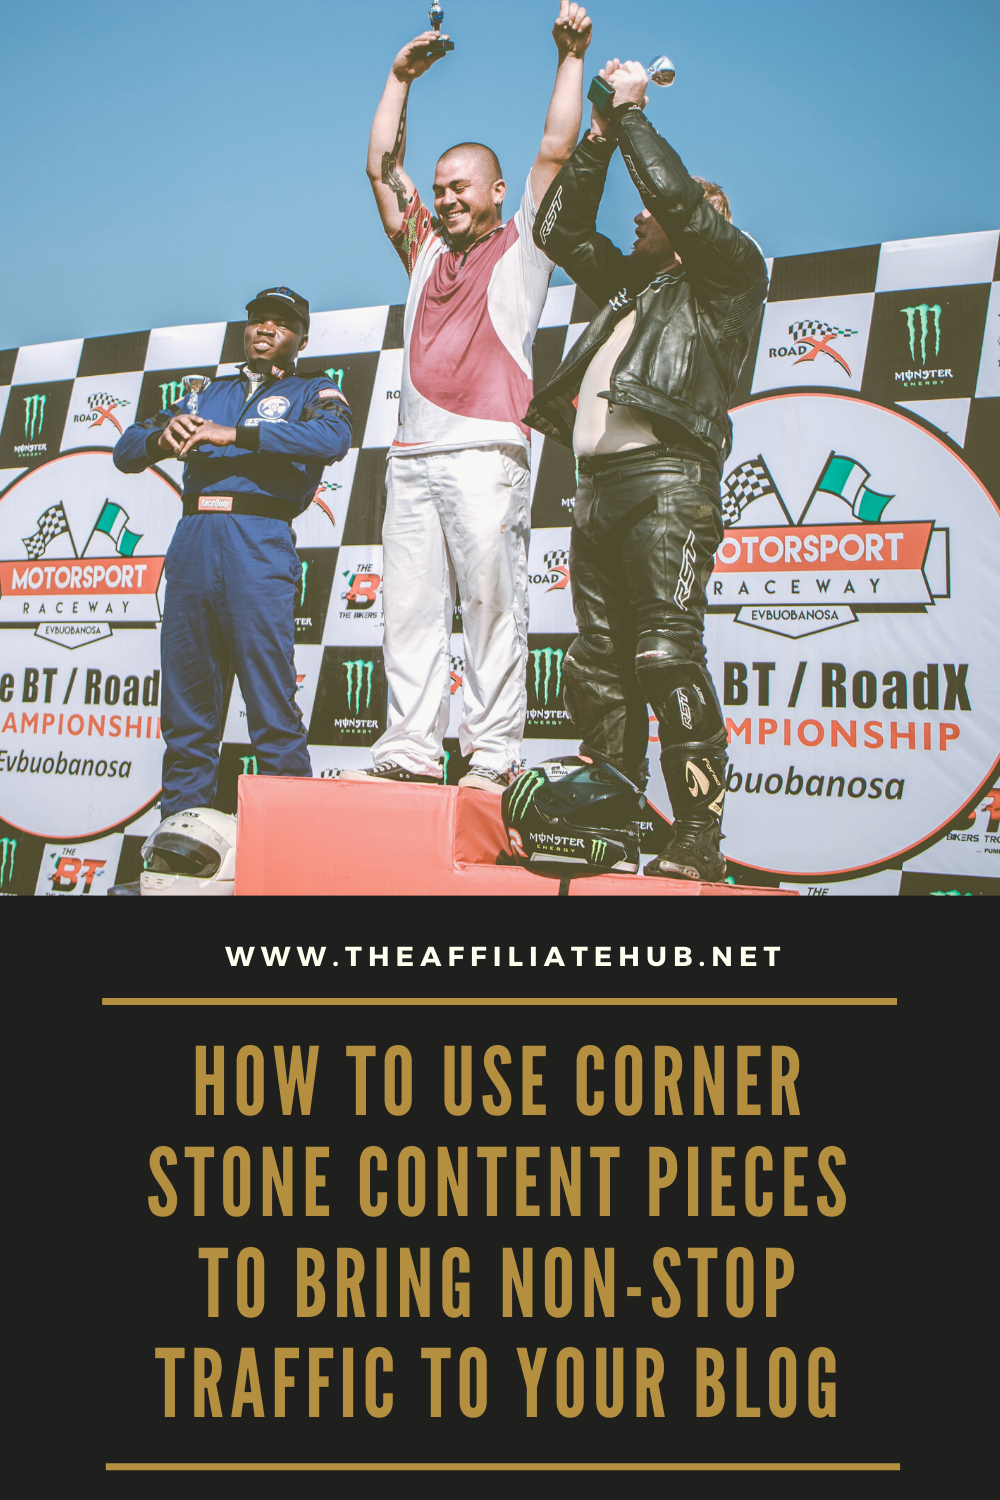 How to use corner stone content pieces to bring non stop traffic to your blog - How to Use Cornerstone Content Pieces to bring Non-Stop Traffic to Your Blog